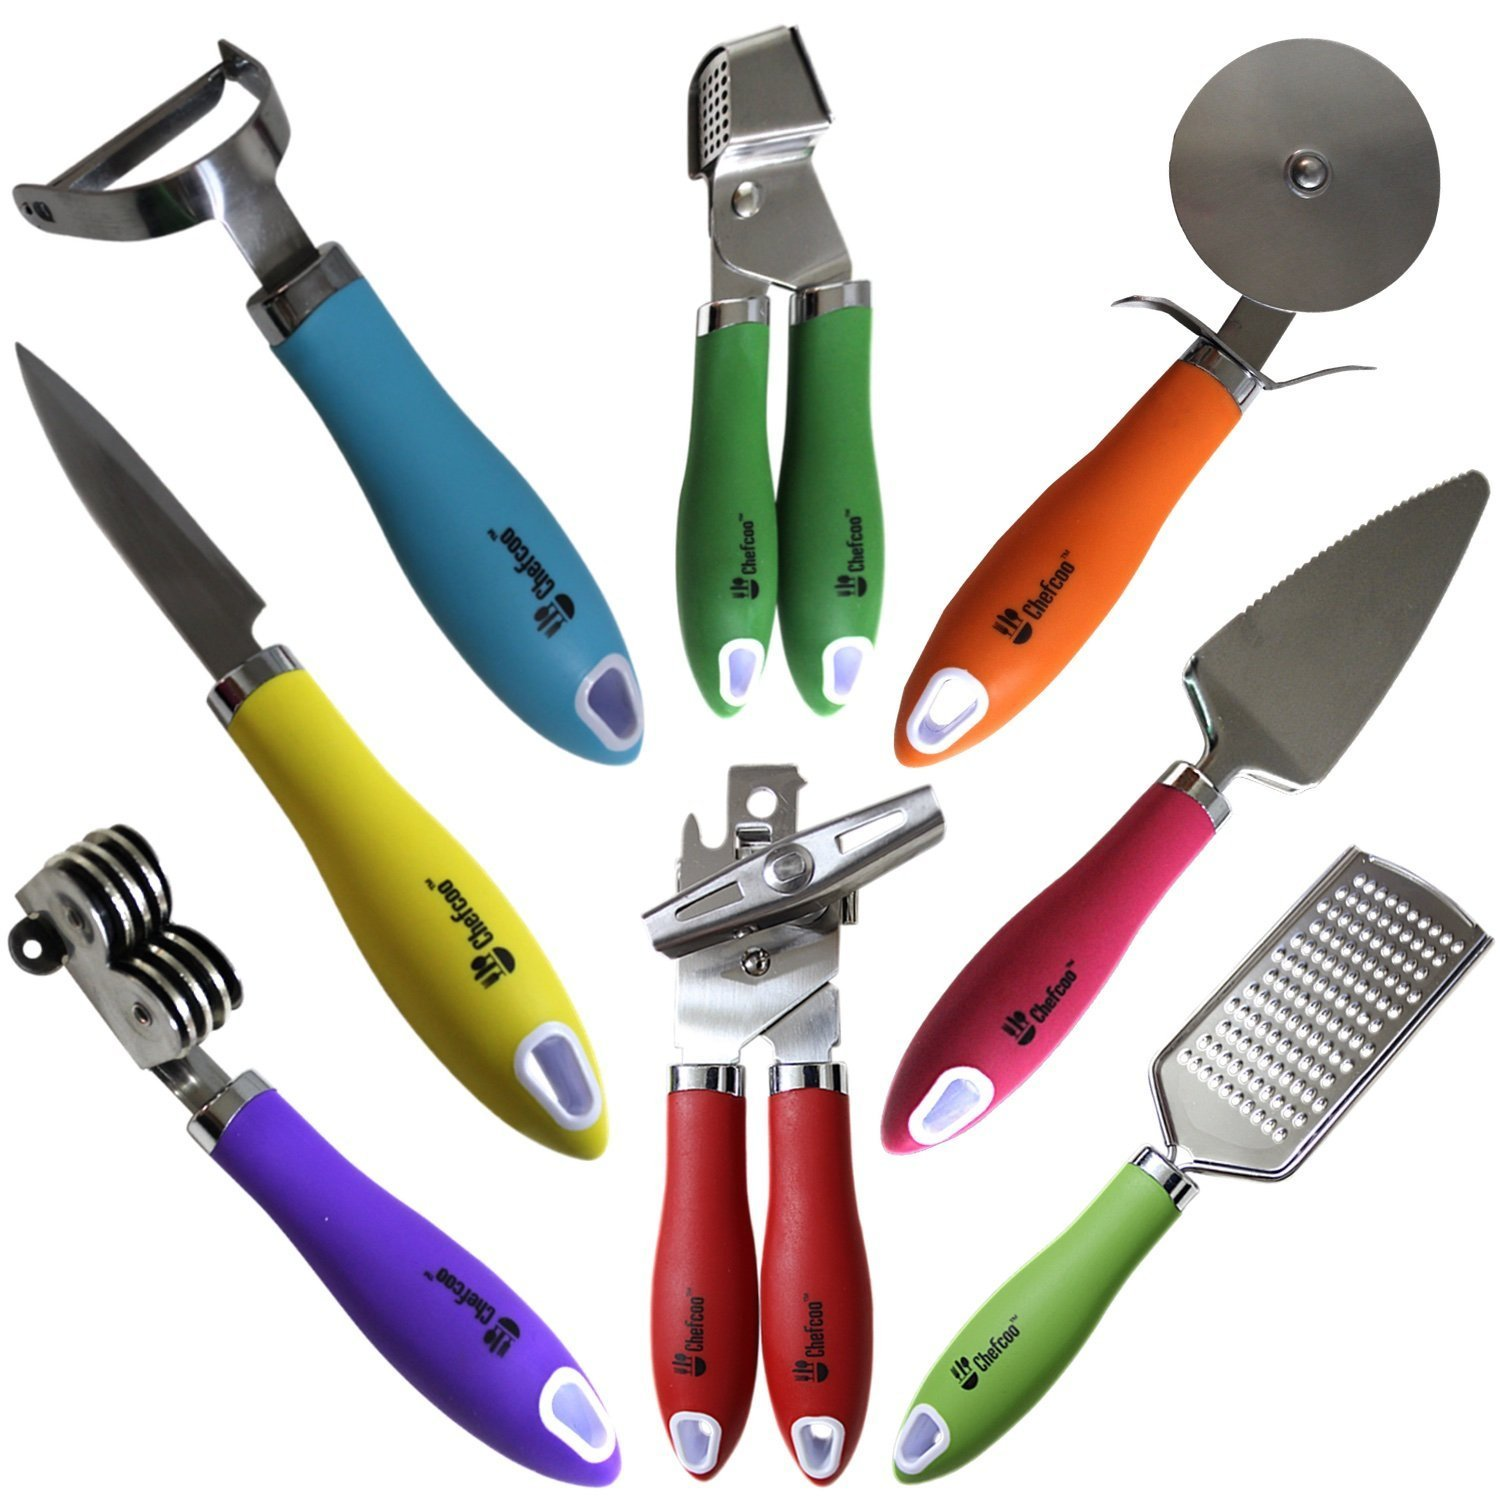 8 Pieces Kitchen Gadget Tools Set By Chefcoo Stainless